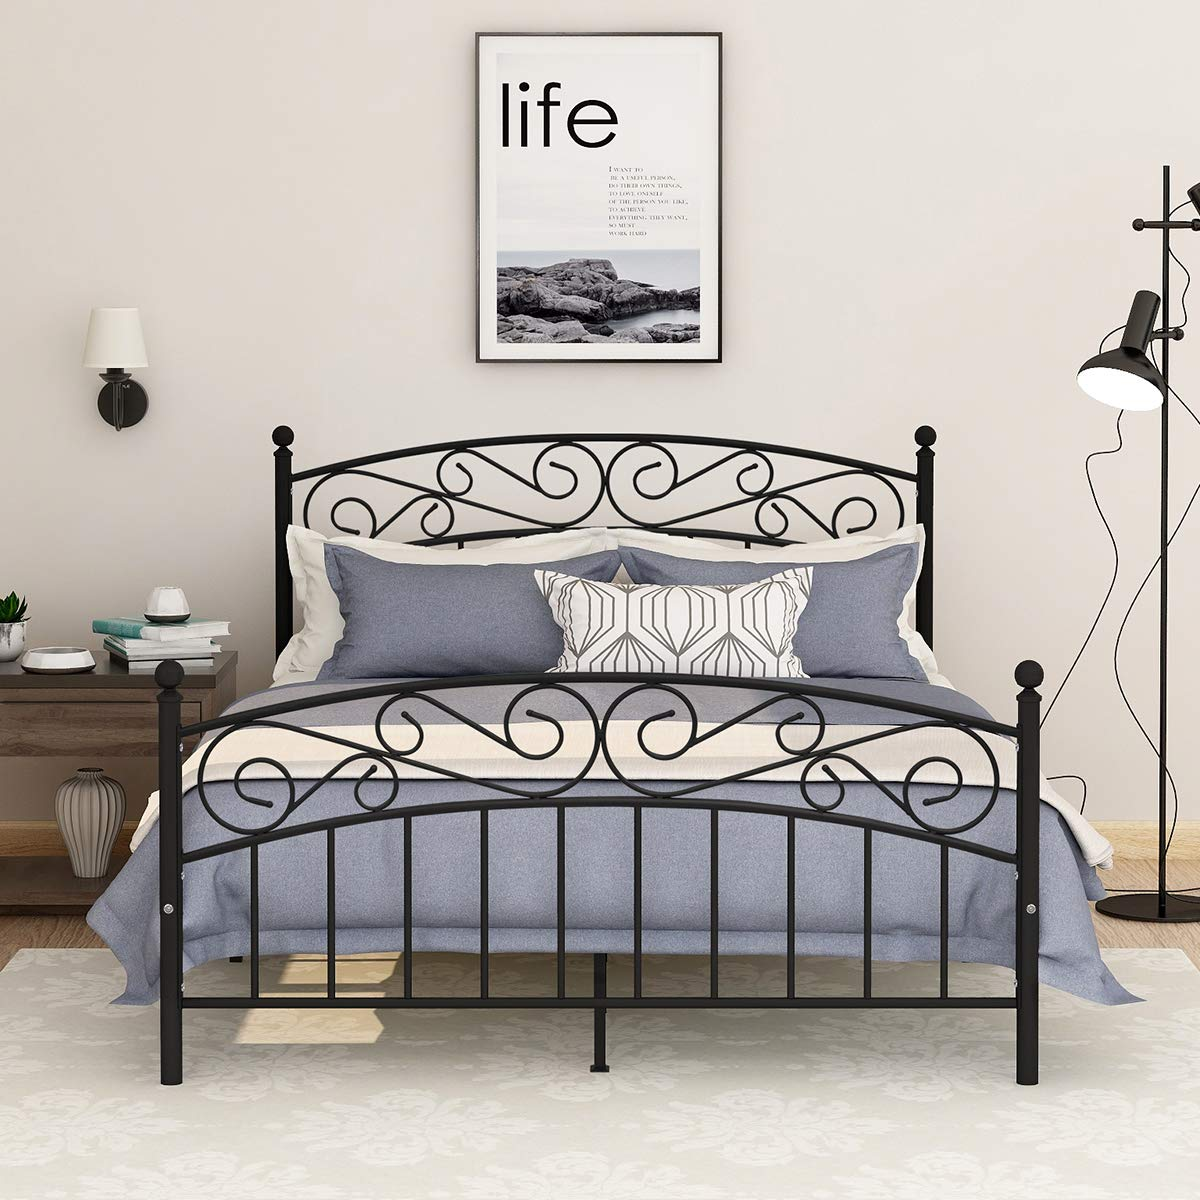 AUFANK Metal Beds Victorian Style Platform Bed Frame with Headboard Footboard Heavy Duty Slat No Box Spring Queen Size Black